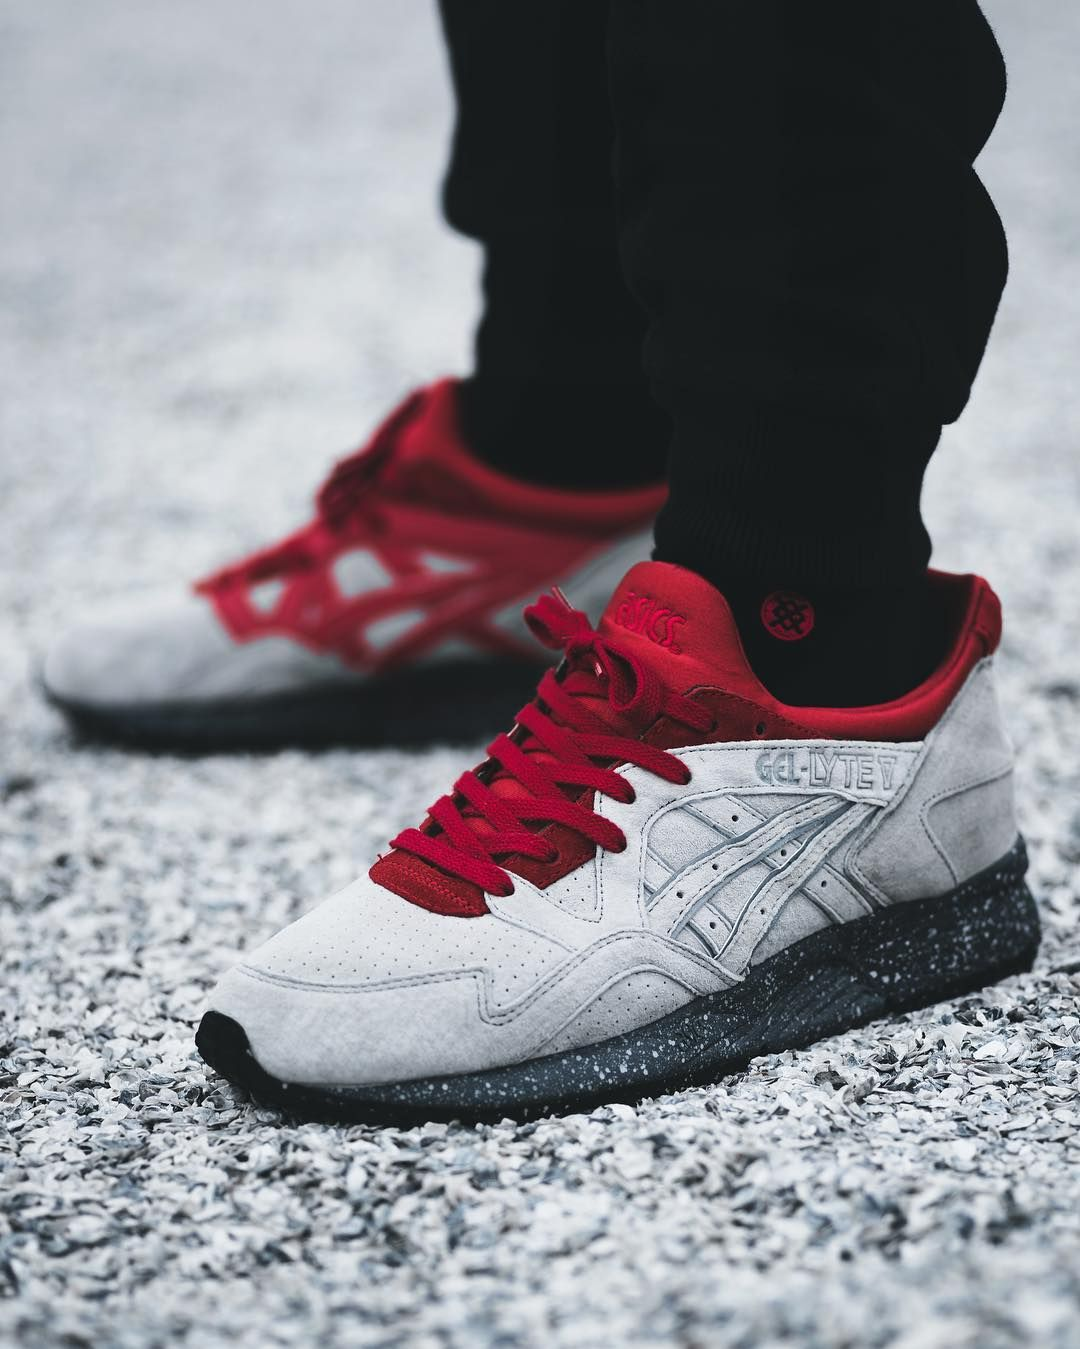 low priced e8f2d a097e Footwear: Concepts x Asics Gel lyte V 'Ember' | Fashion ...